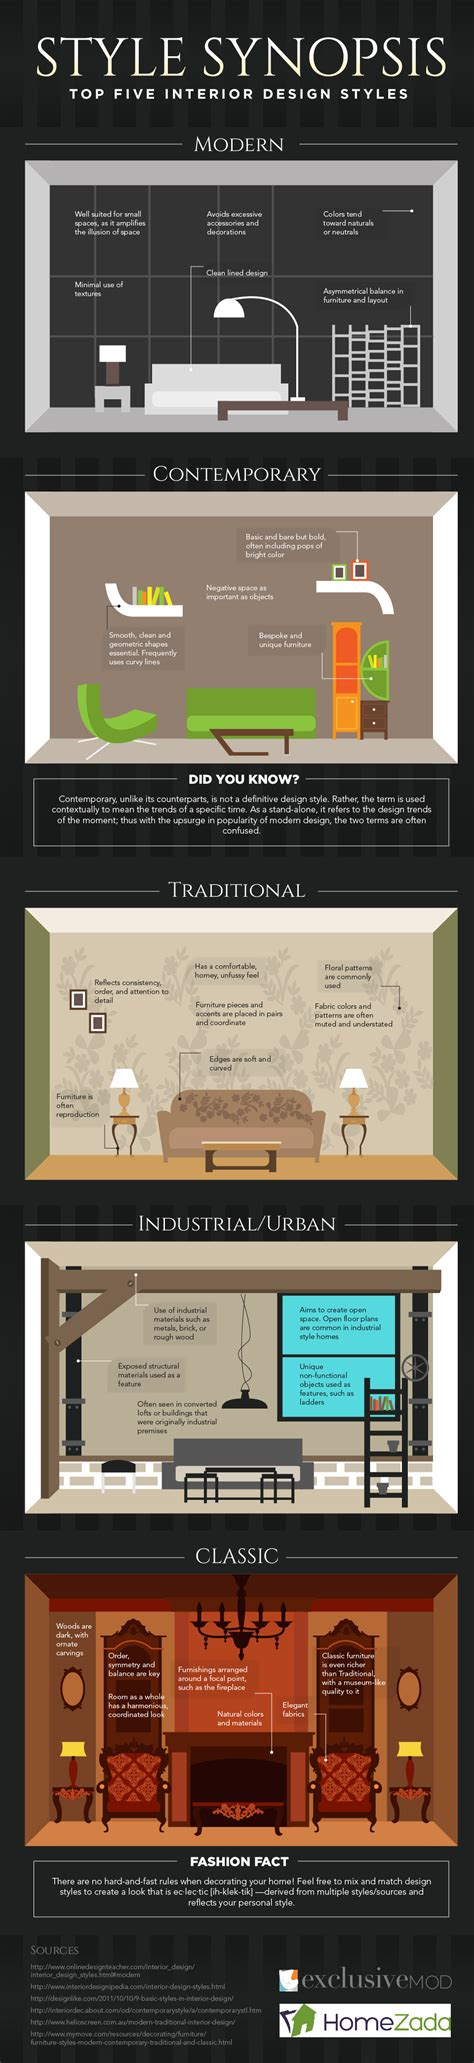 5 different decorating styles how to find yours bellacor top five interior design styles which one describes yours